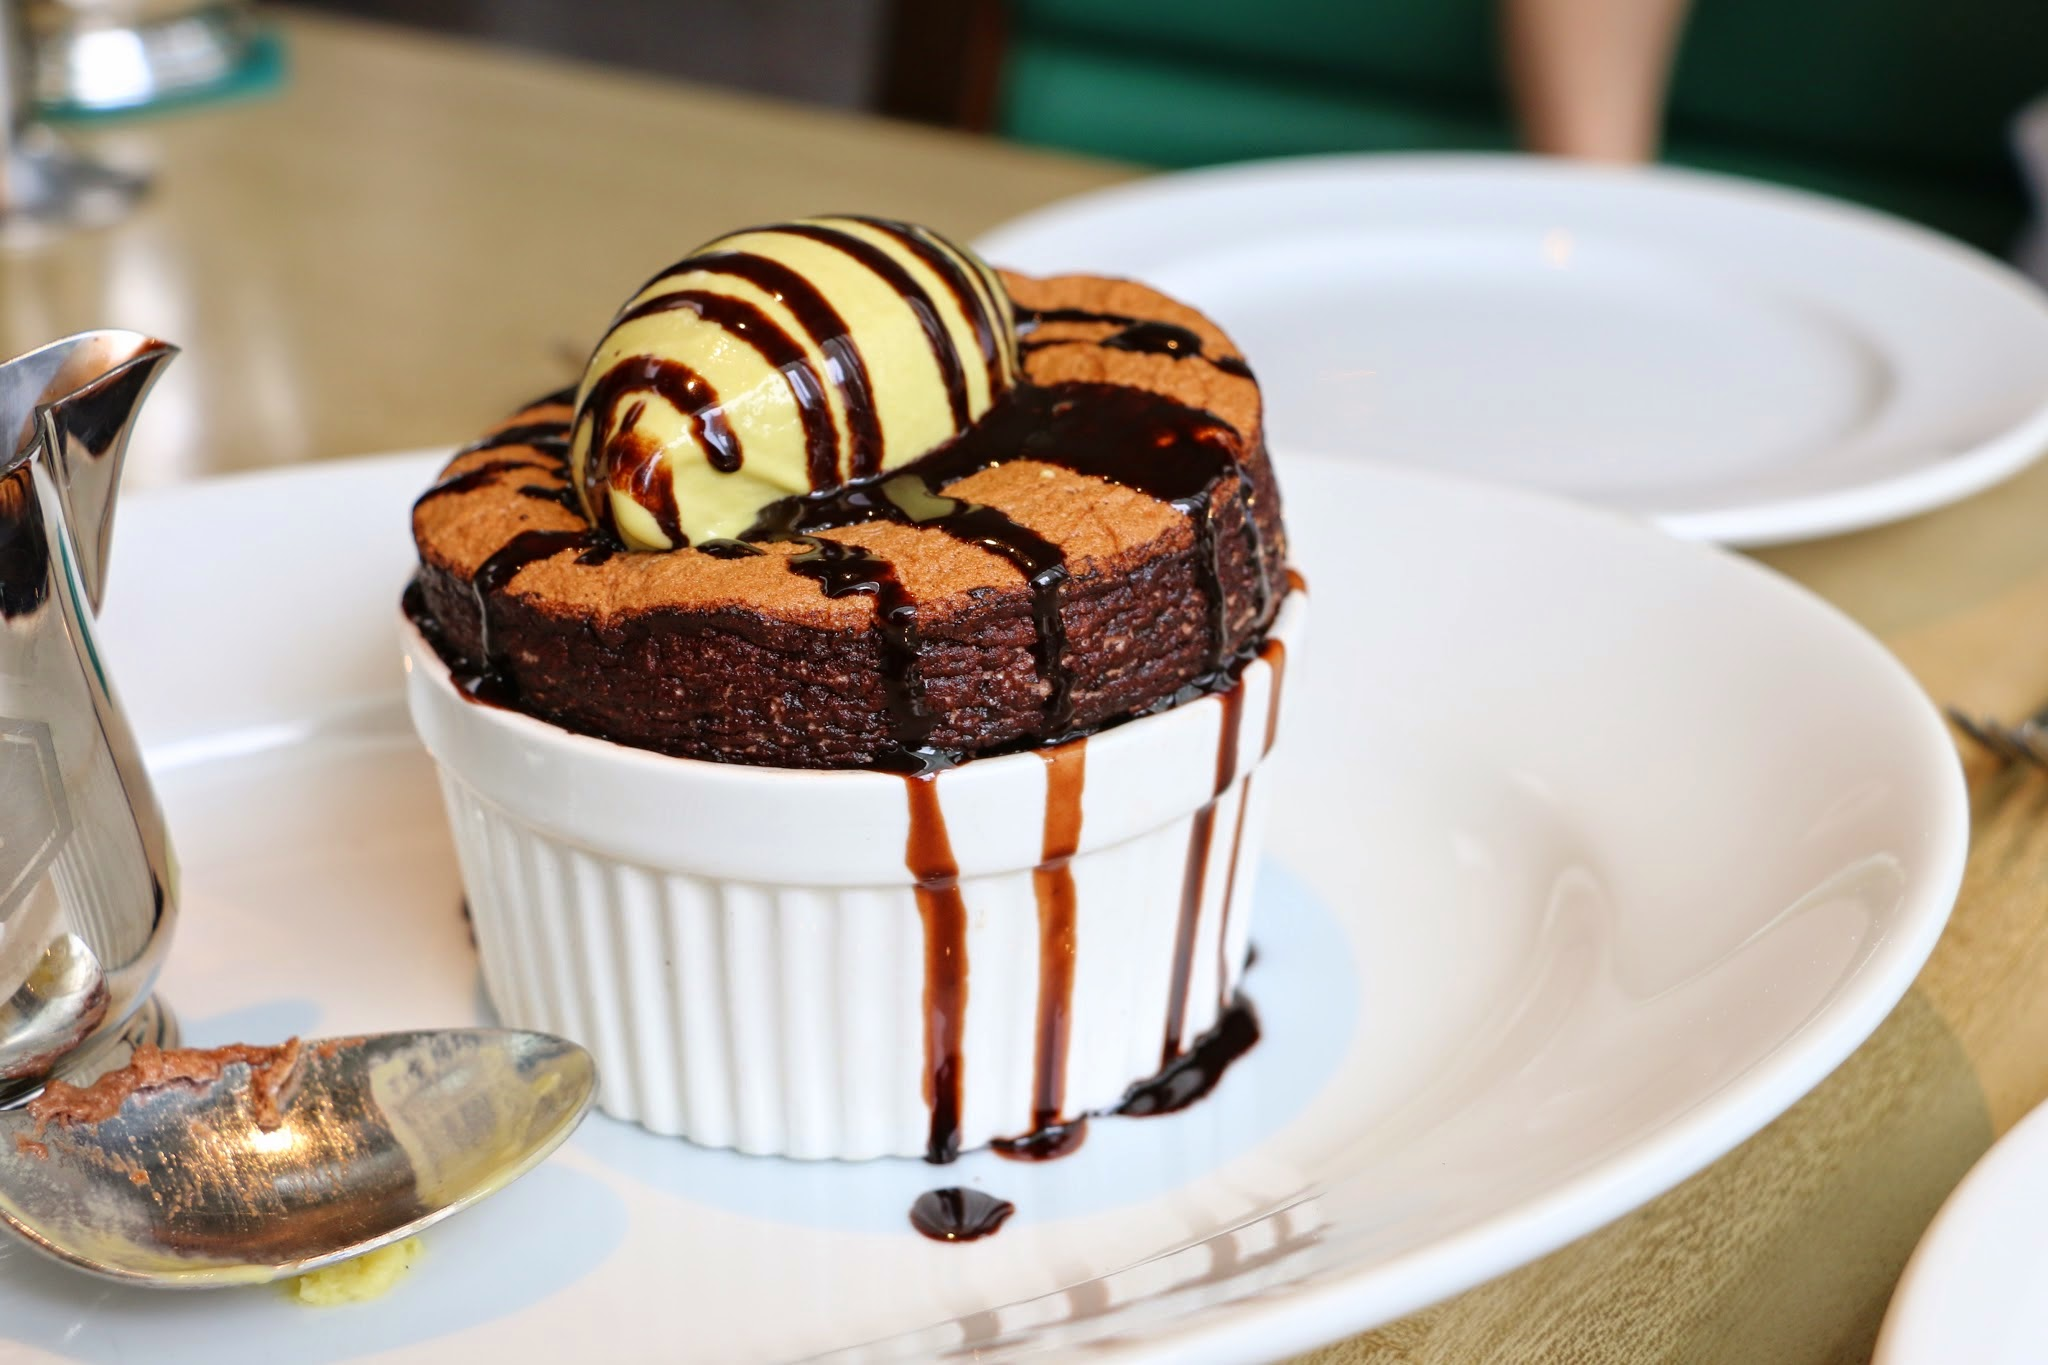 The Continental Chocolate Pistachio Souffle